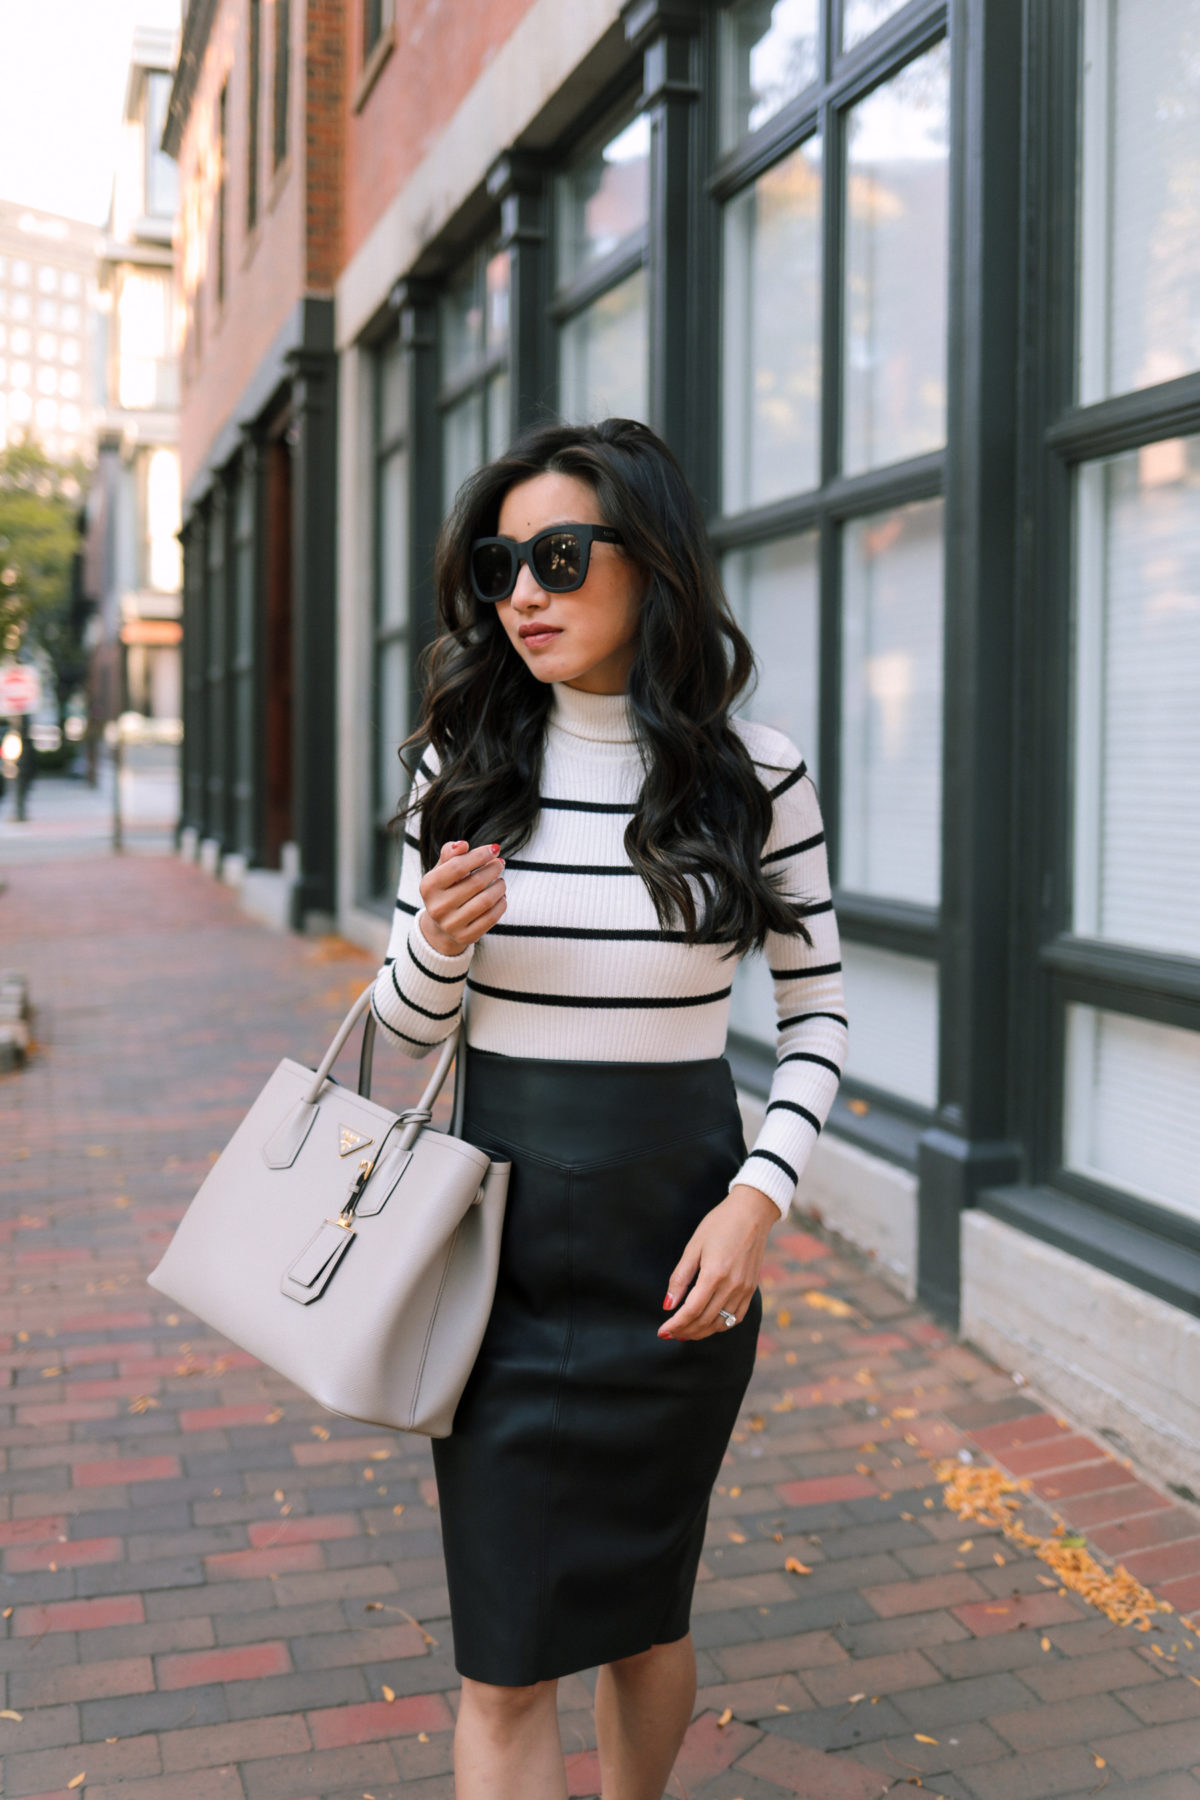 extra petite boston asian fashion blogger